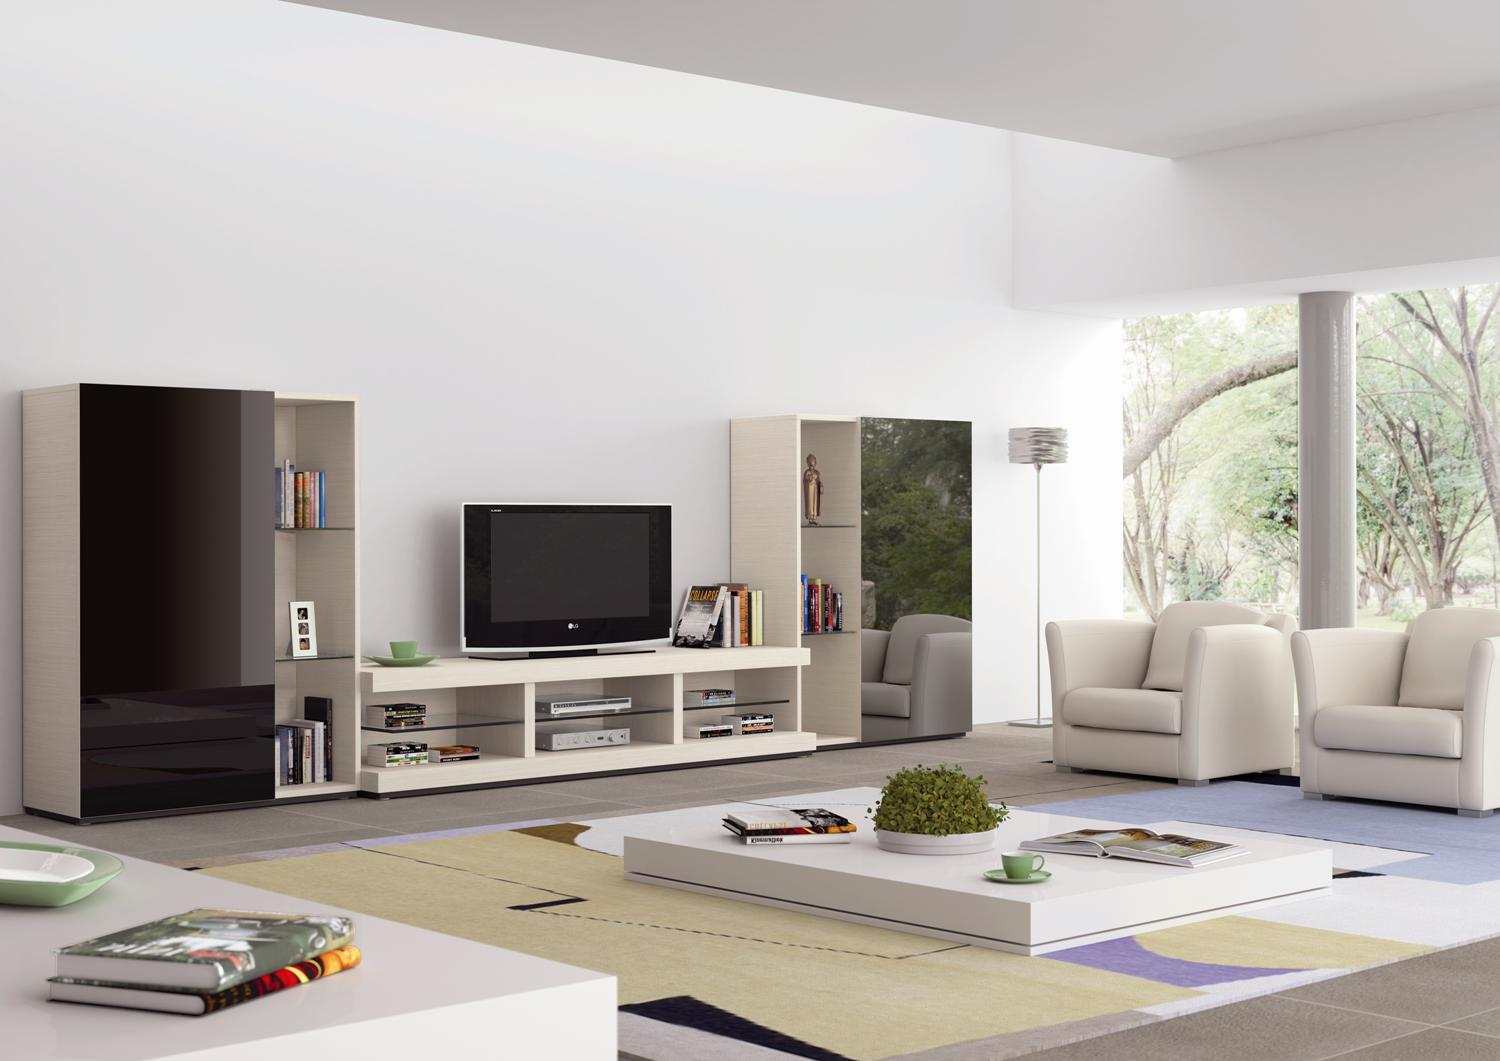 Ydeas Muebles Muebles Modernos Ideas Designs Of Home And Garden